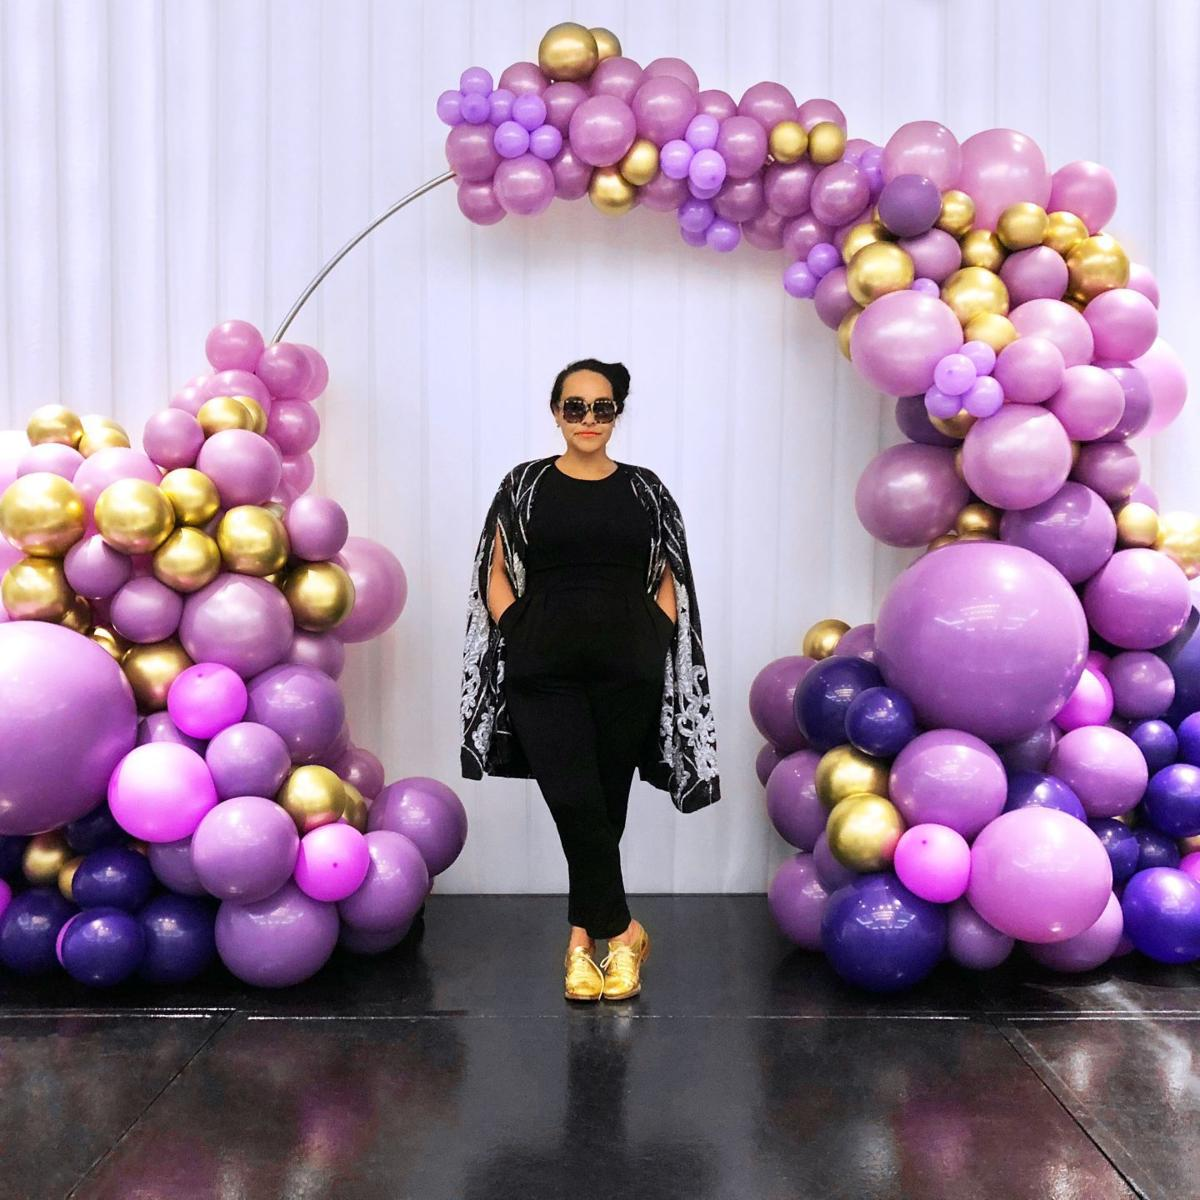 Ontiveros in front of balloon installation